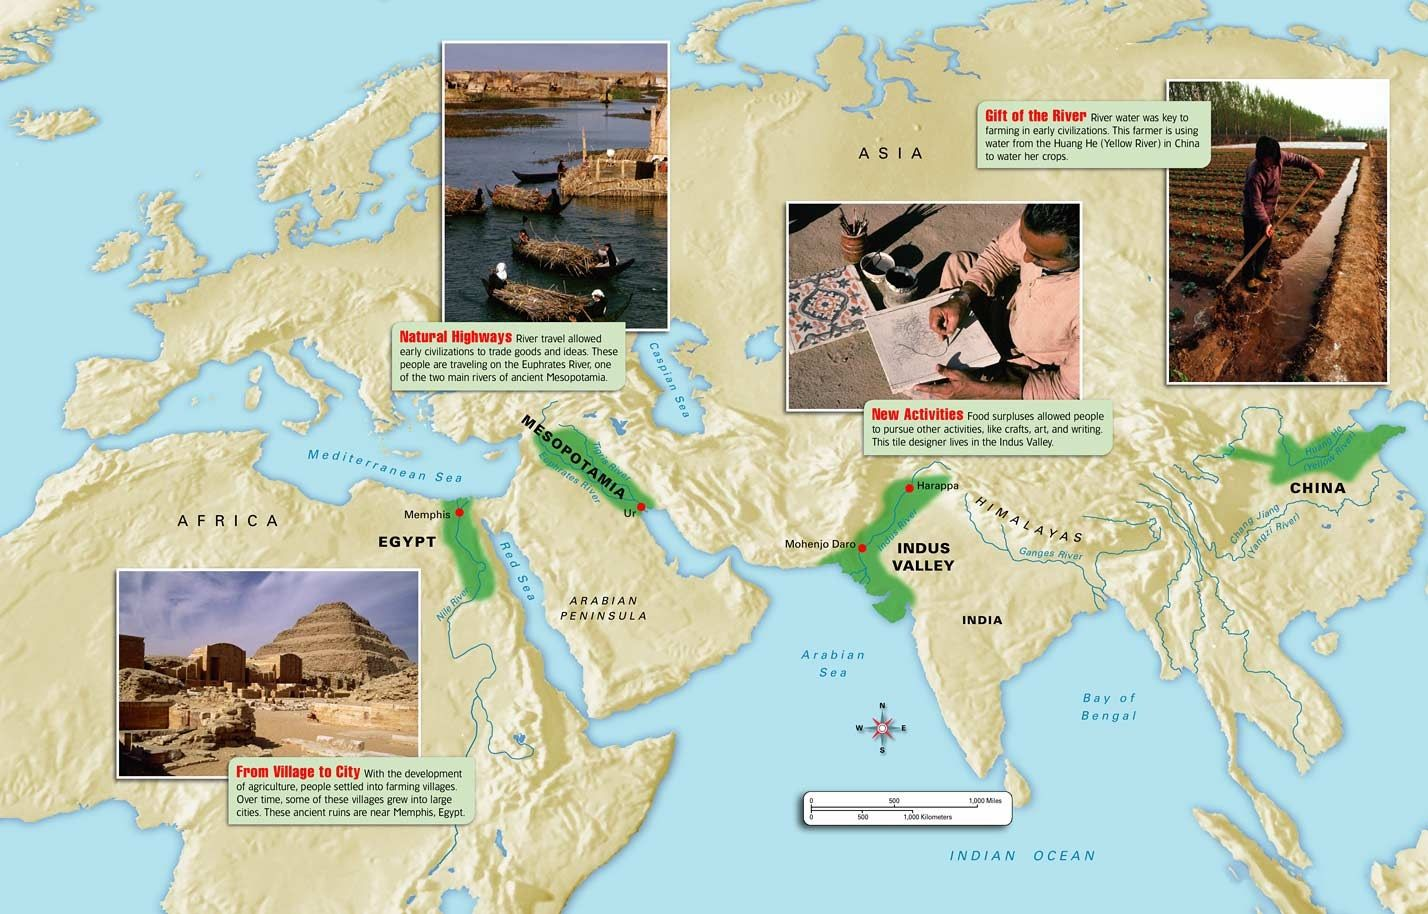 The Earliest Civilizations Emerged In A Egypt Along The